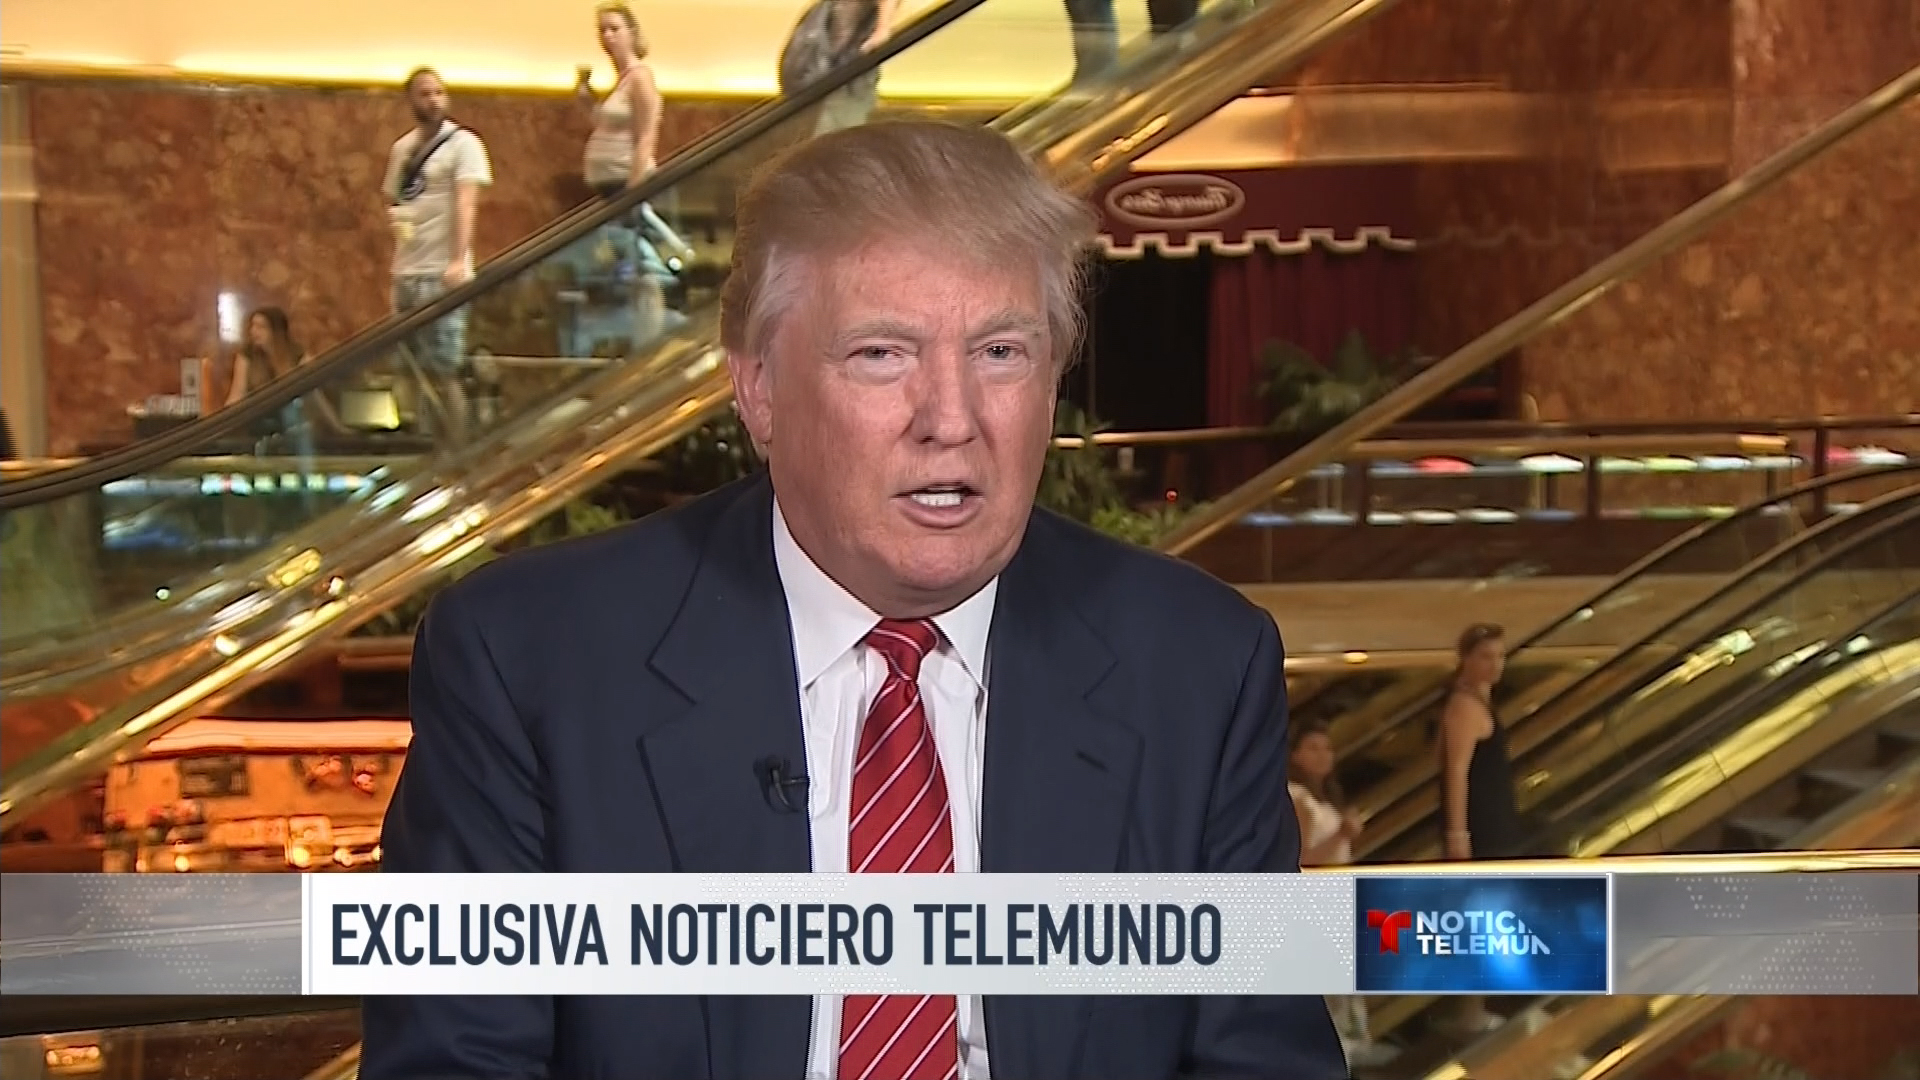 Jose Diaz-Balart speaks with Donald Trump